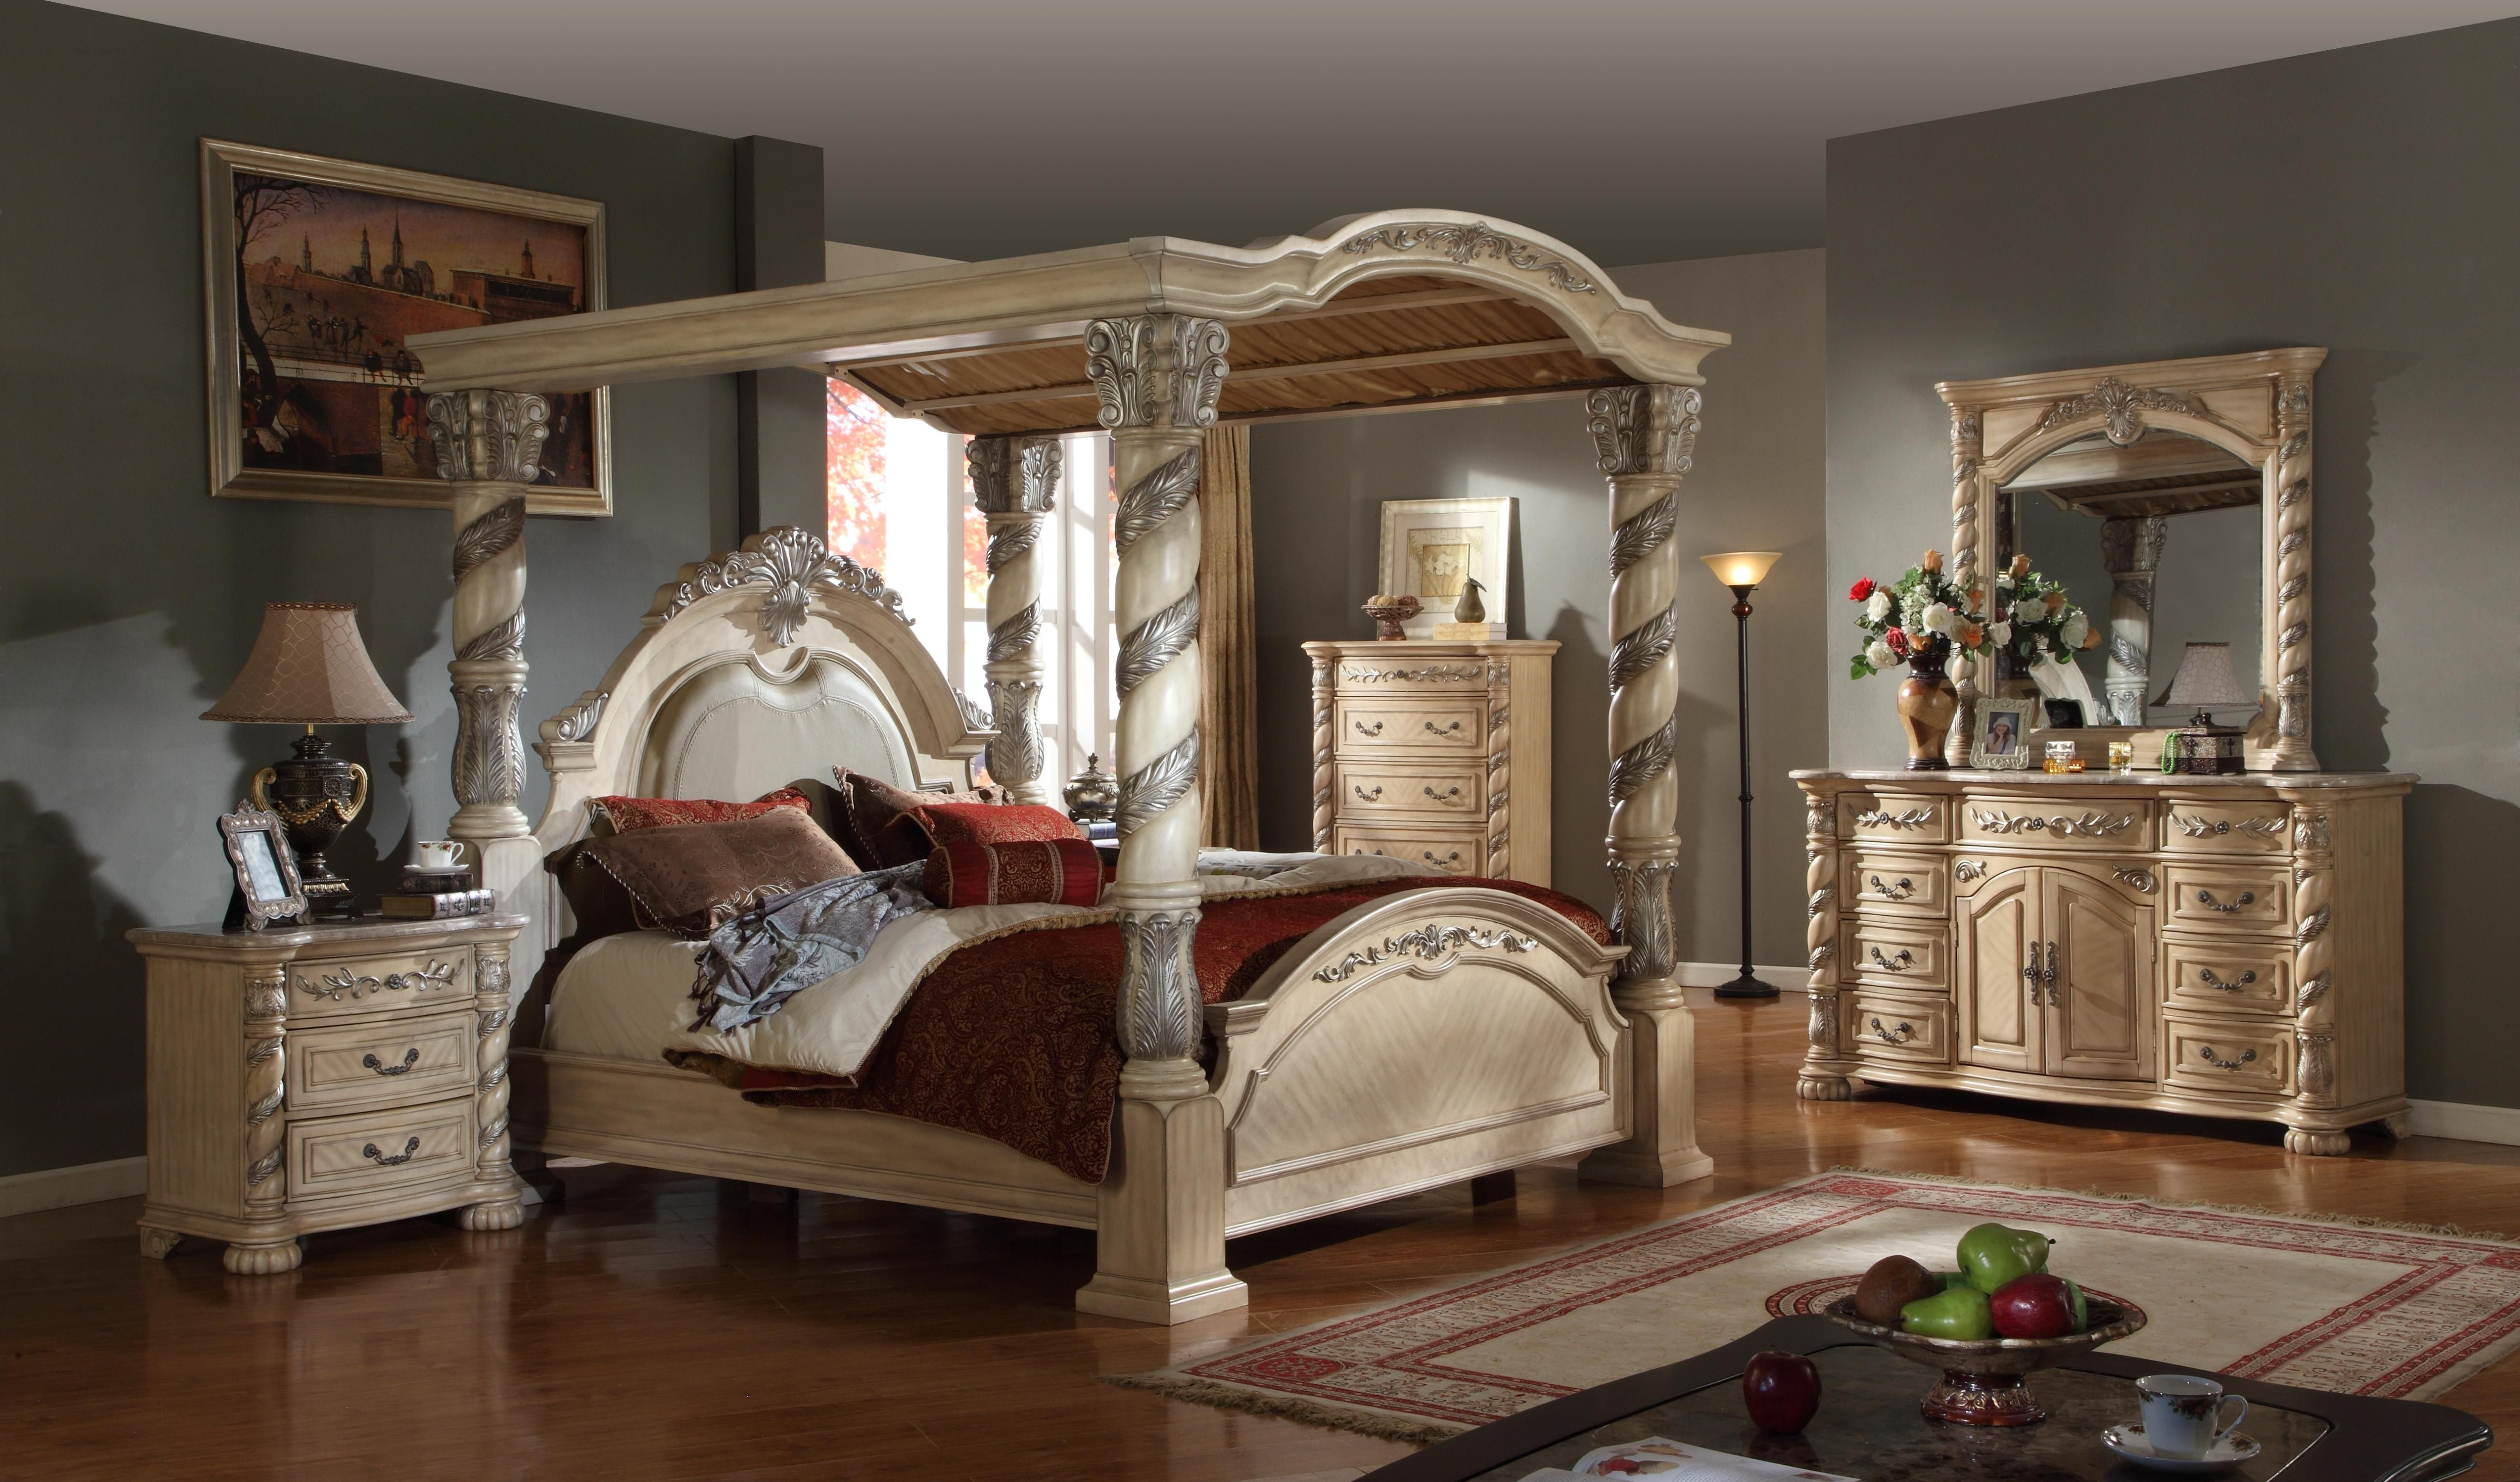 Classic Antique Style Cream Colored Canopy Bedroom Set